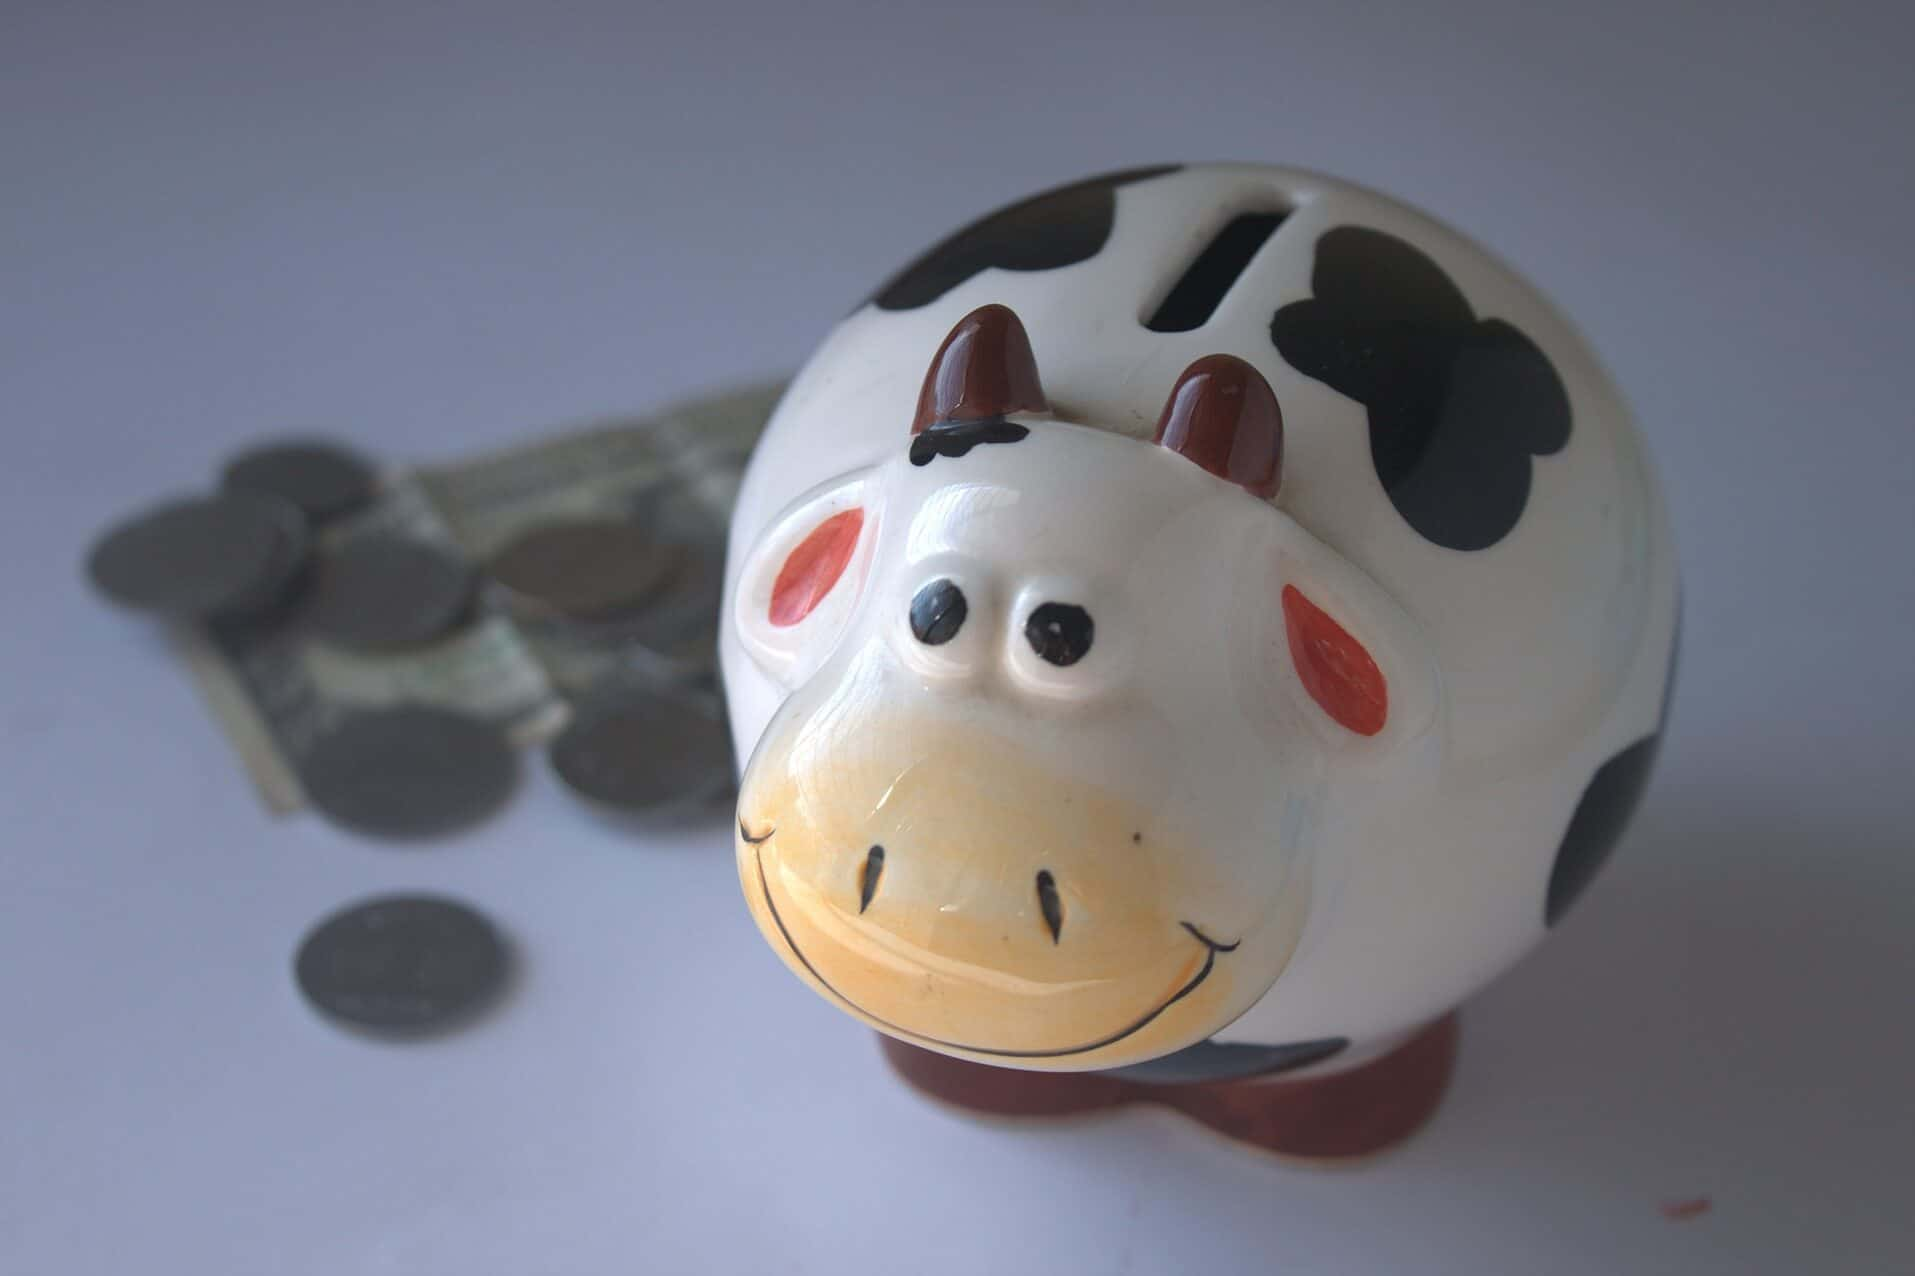 Factoring with or without recourse provides business with alternative funding options.